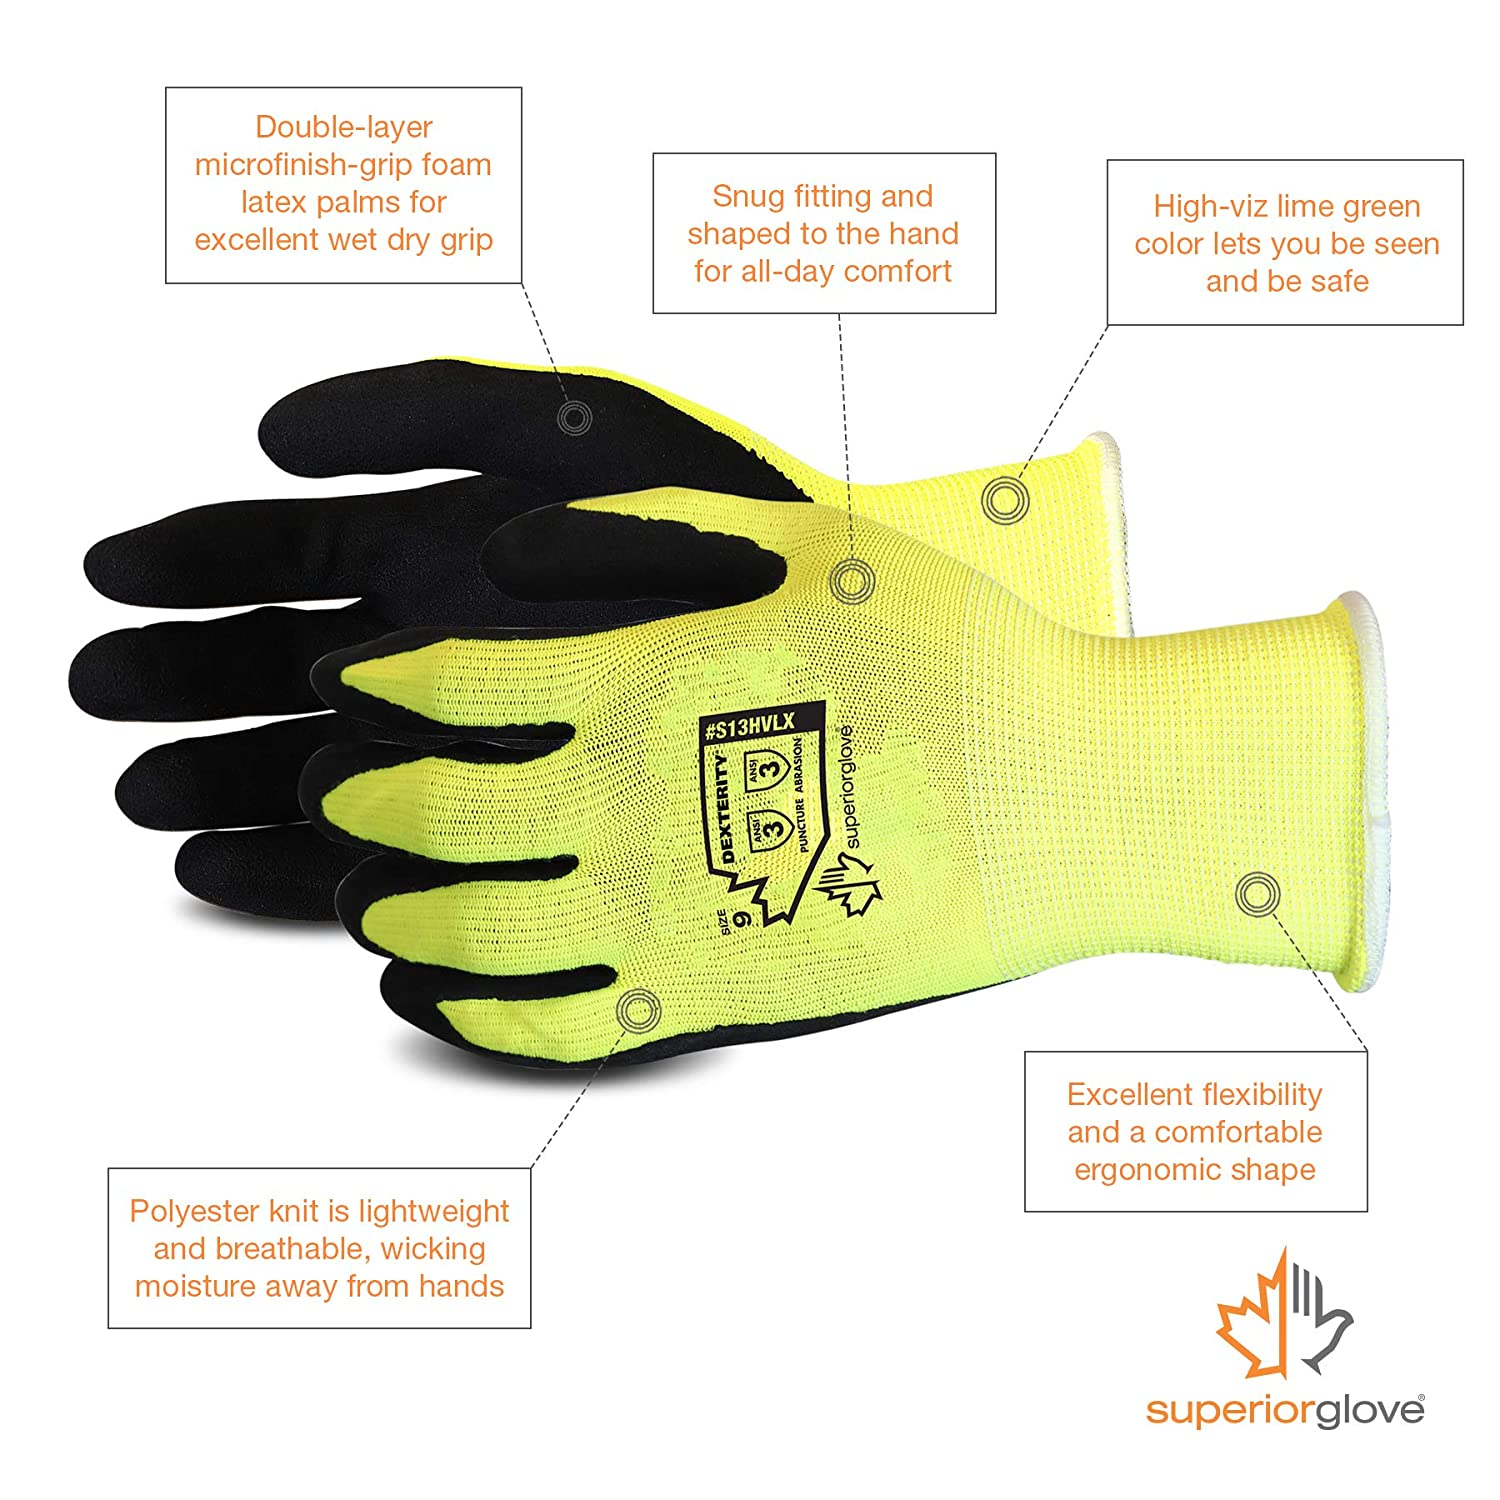 S13HVL Rose Pruning Gloves with Moisture Wicking High Visibility Color Superior Gardening Gloves 3-Pack for Landscaping and Yard Work Large